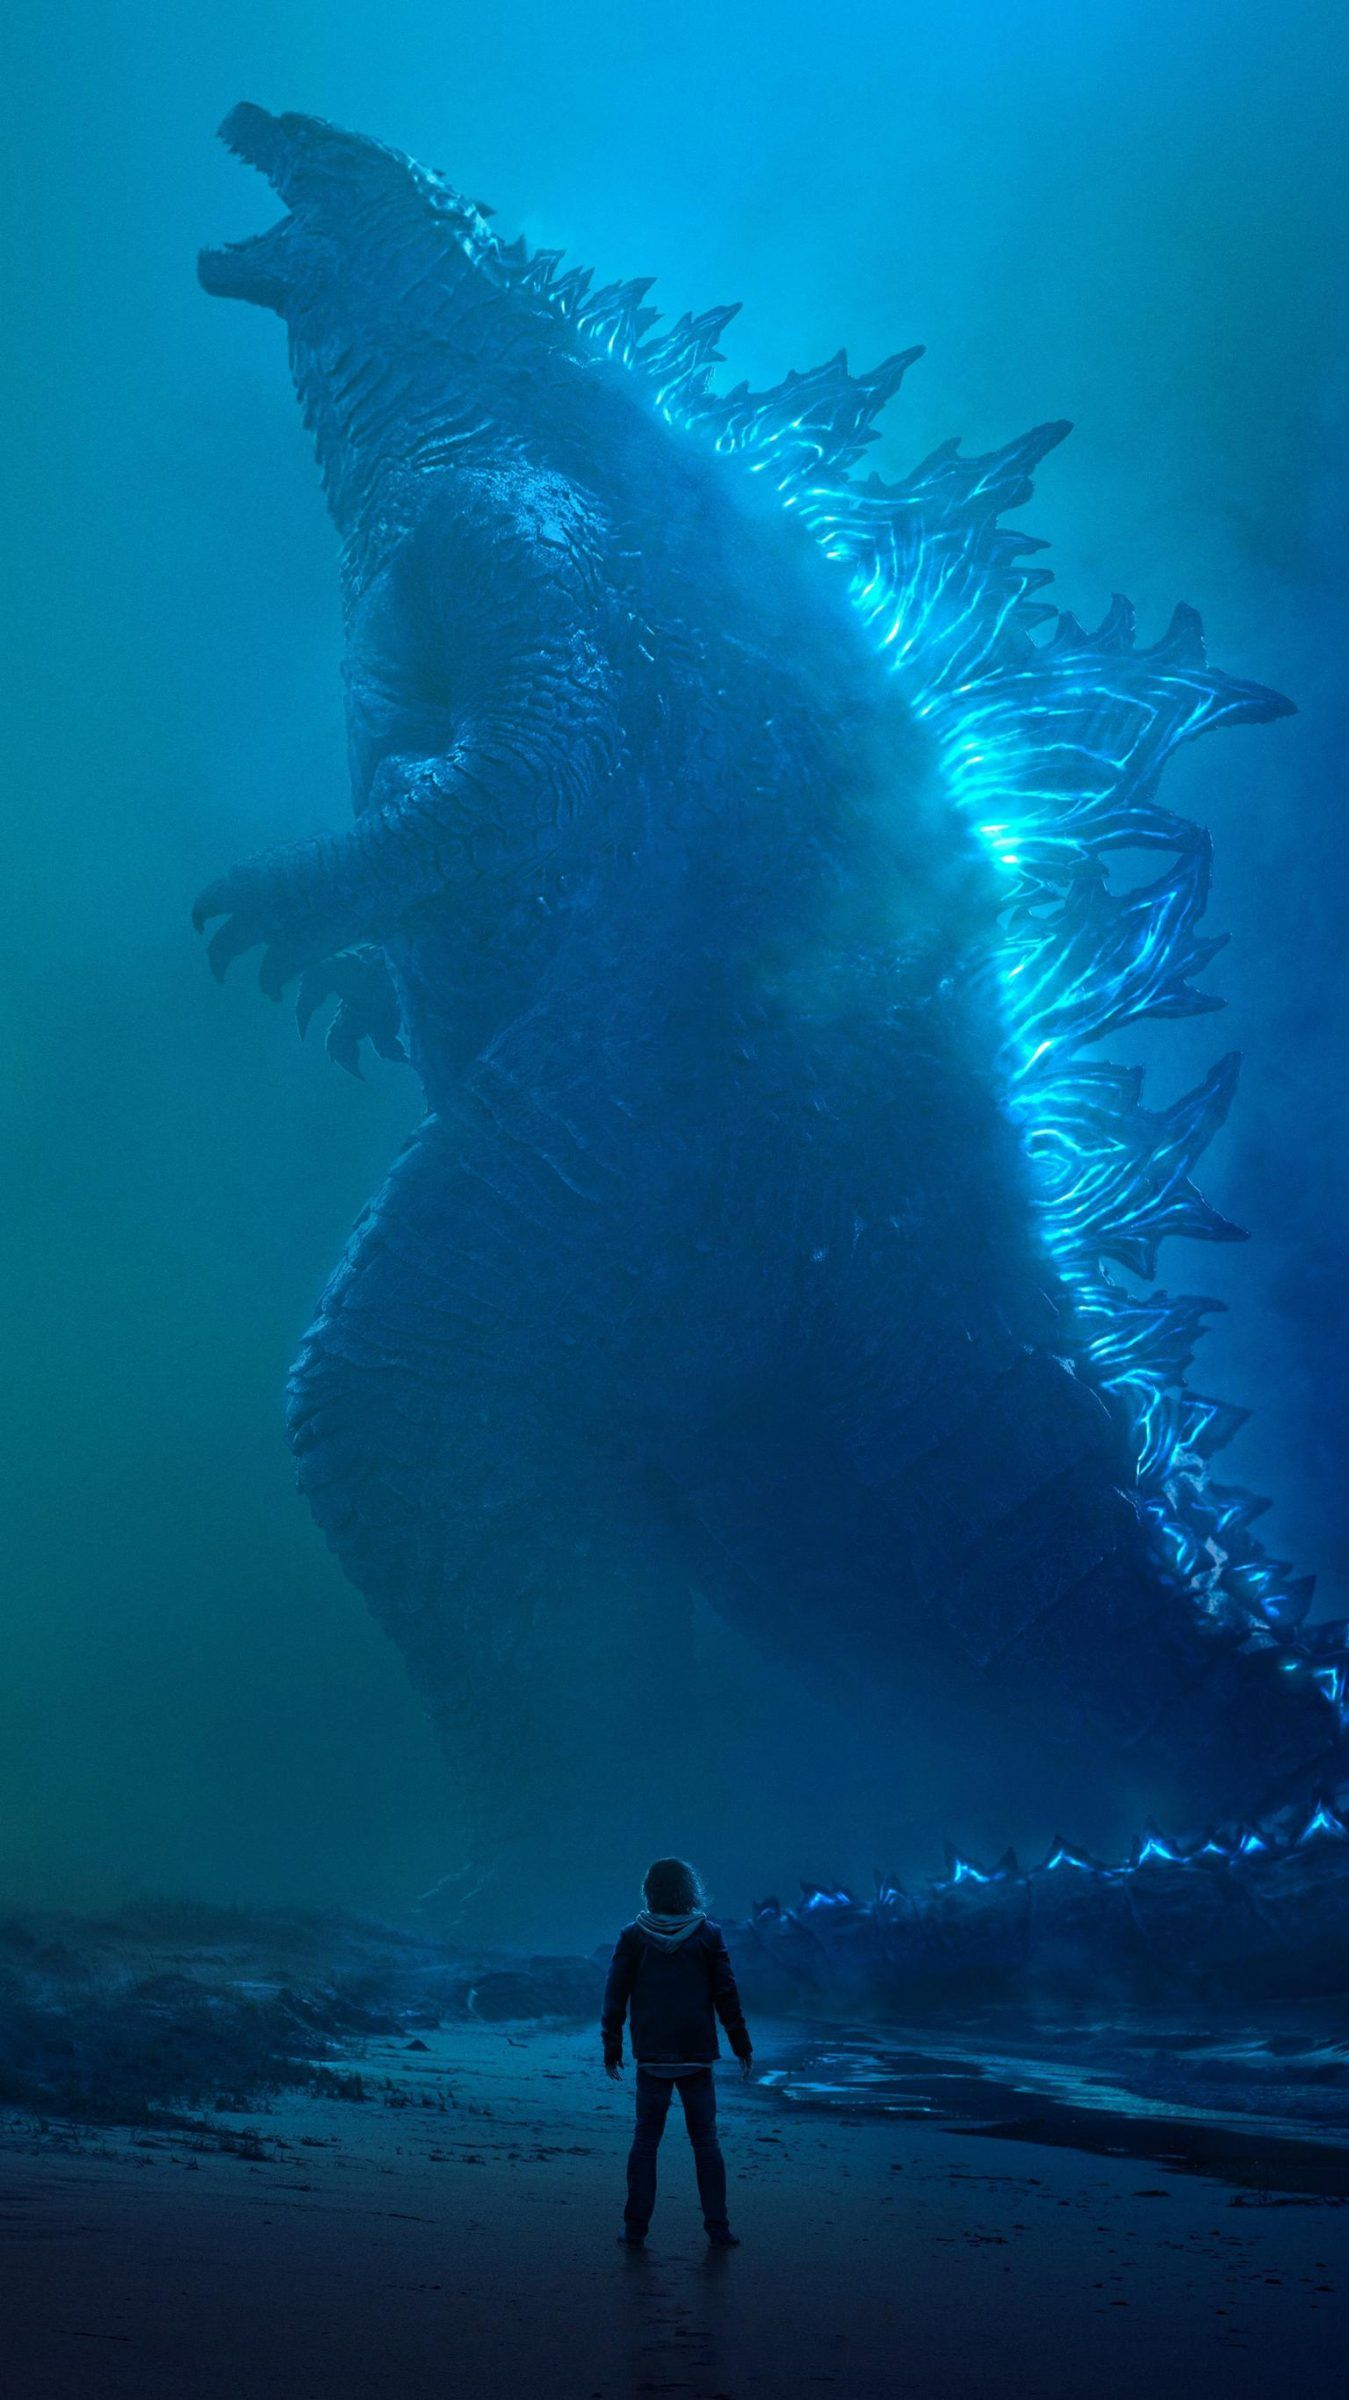 Godzilla: King of the Monsters HD Wallpapers   7wallpapers ...